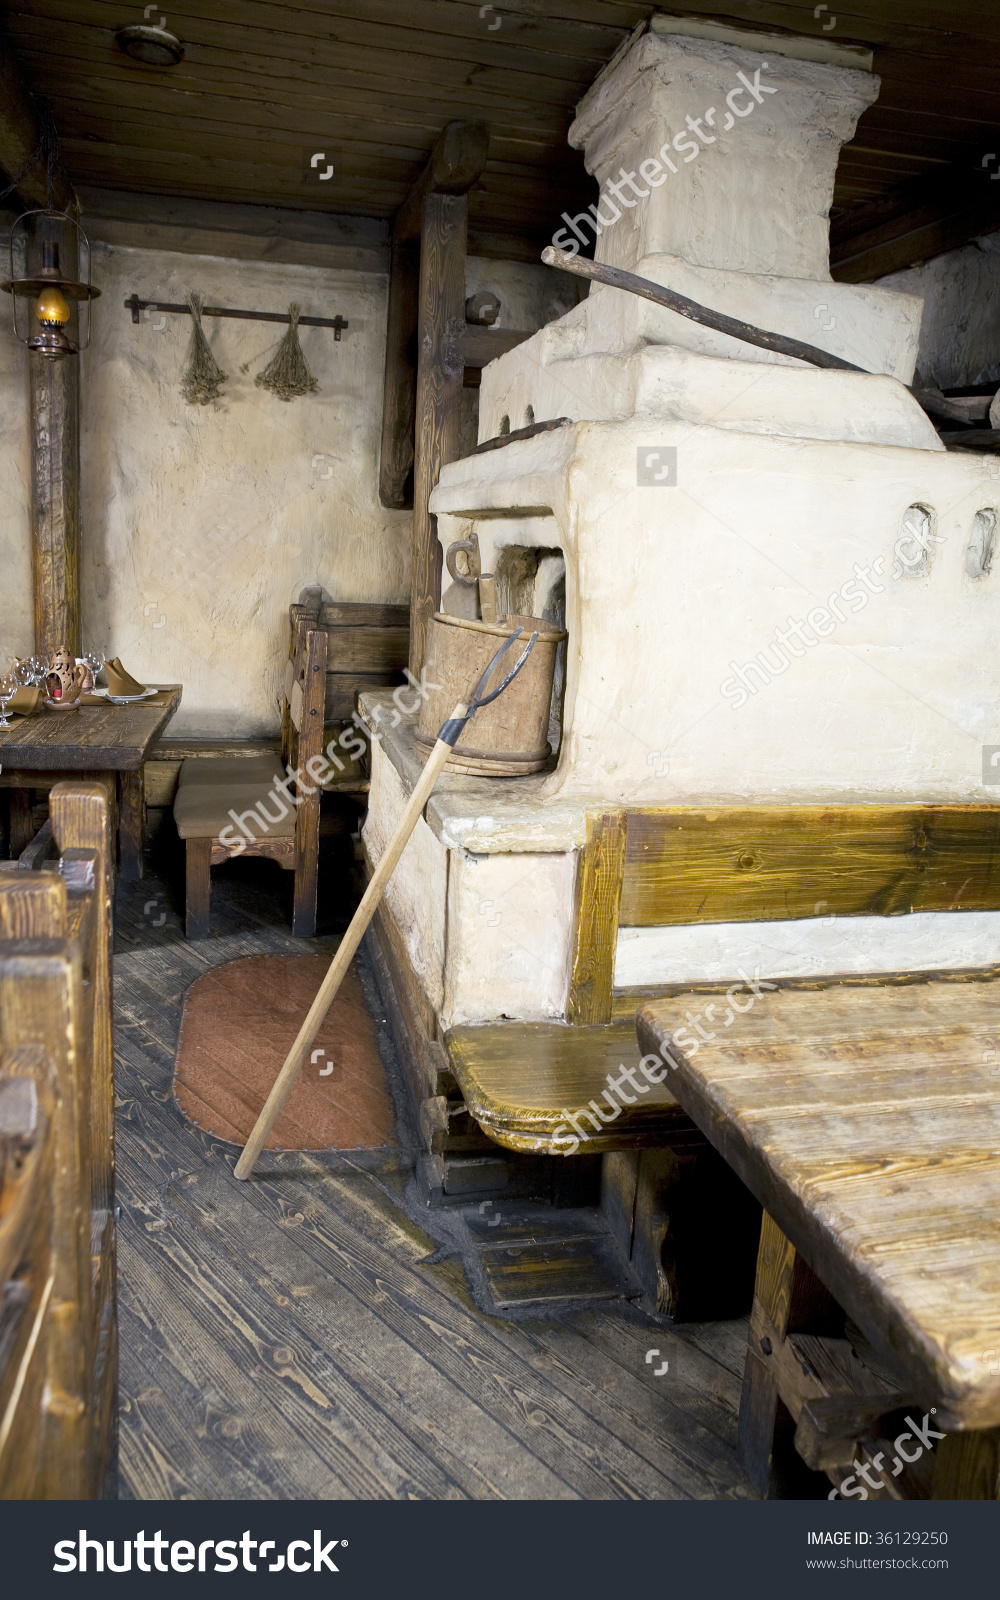 Russian Stove. Interior Of Old Russian Home With Traditional Oven.